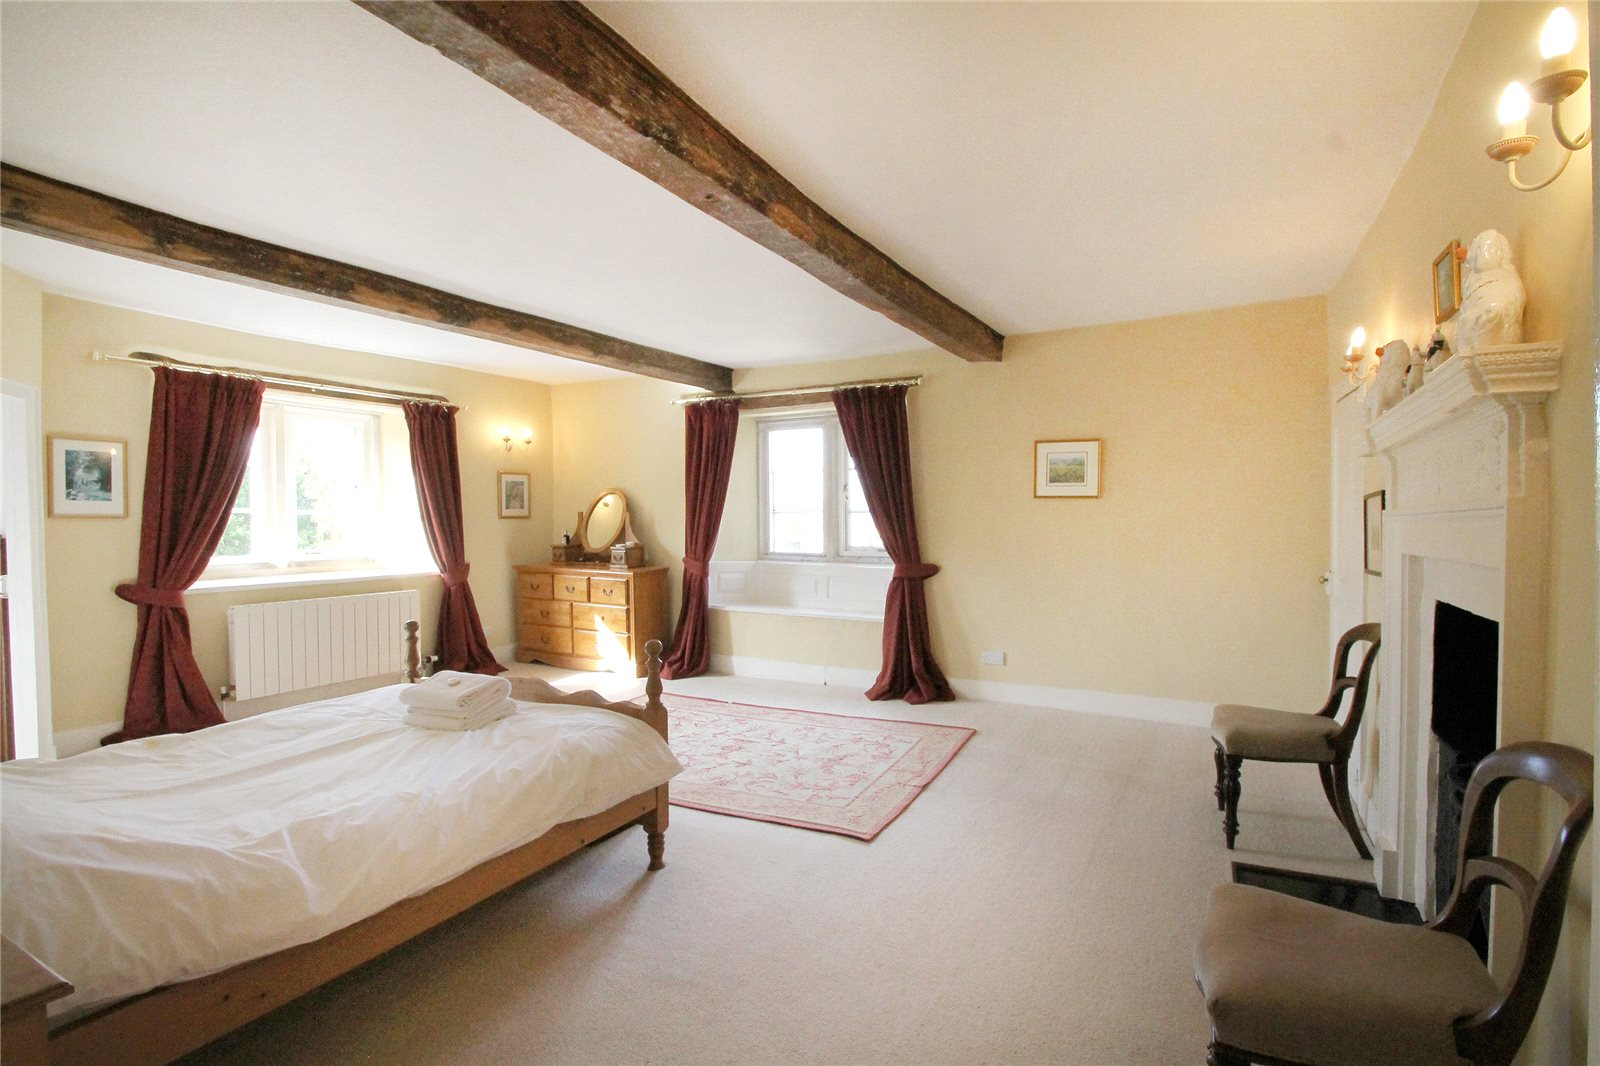 Additional photo for property listing at Market Place, Folkingham, Sleaford, Lincolnshire, NG34 Sleaford, Inglaterra